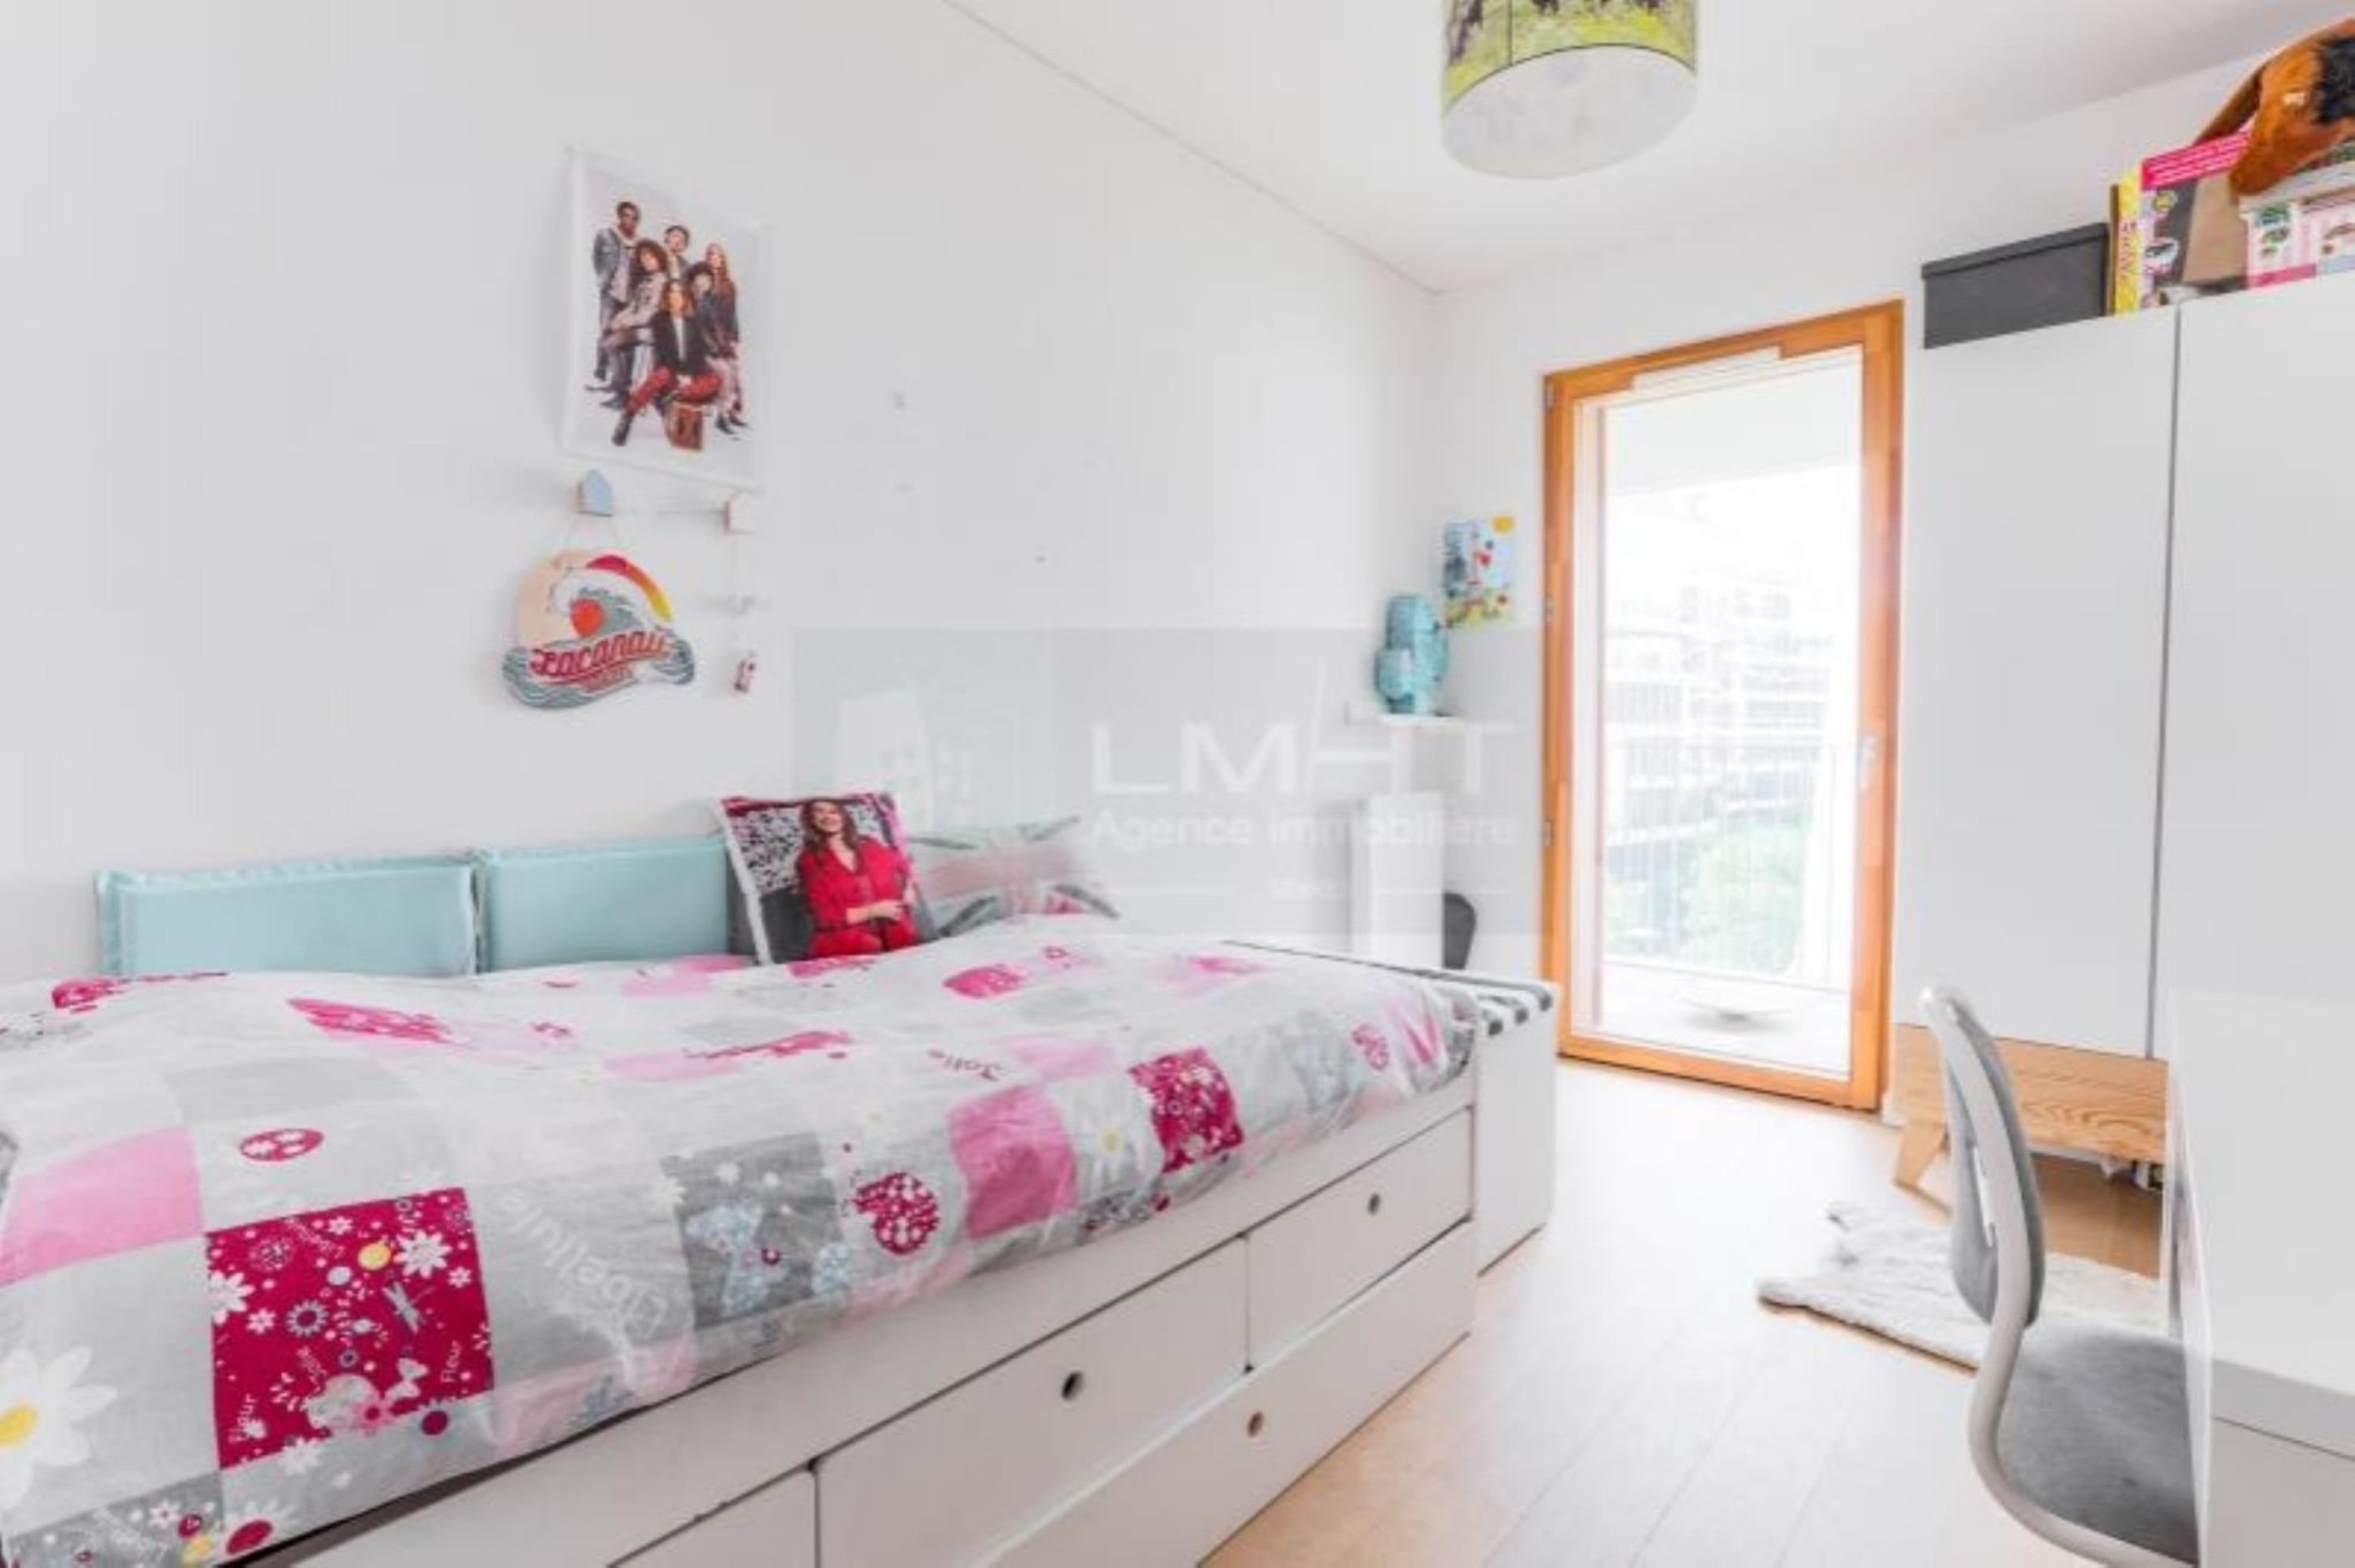 agence immobilière sevres 92 le chesnay 78 achat vente location appartement maison immobilier LMHT ANF HFCBLKSN